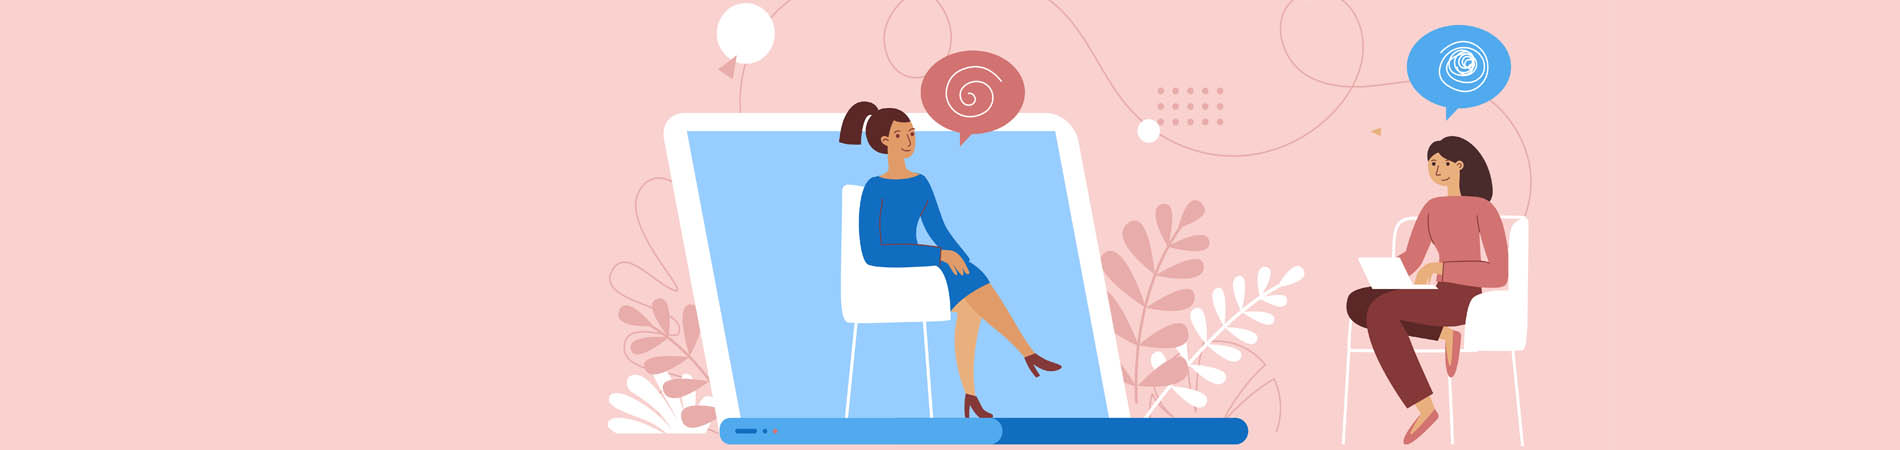 Telepsychiatry illustration between a patient and a provider